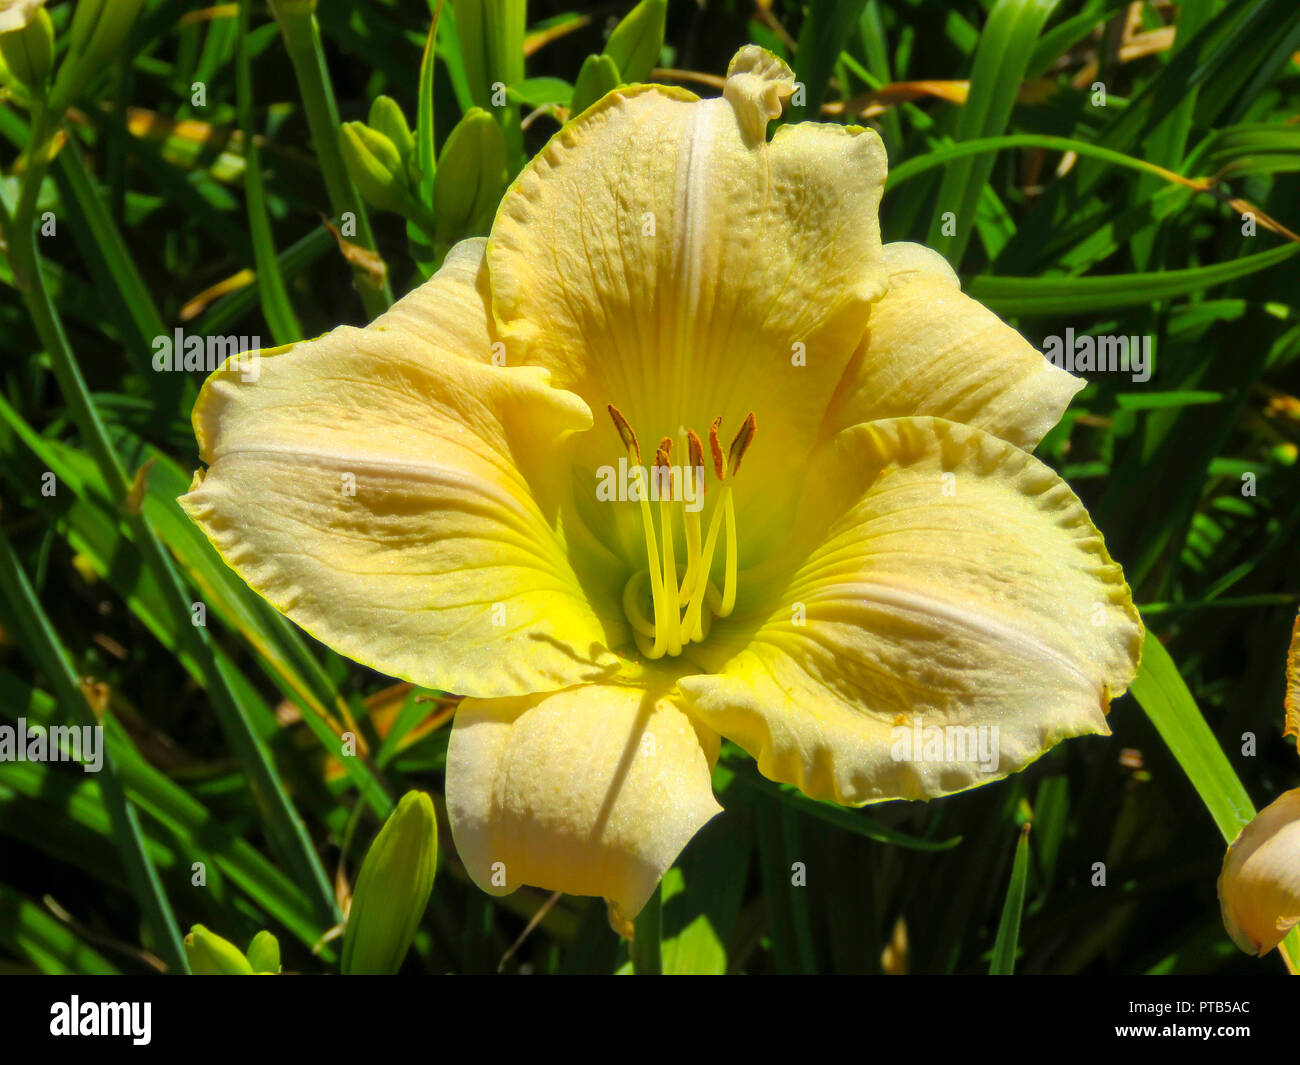 Day lily in flower in a back garden in Cardiff, South Wales, UK - Stock Image